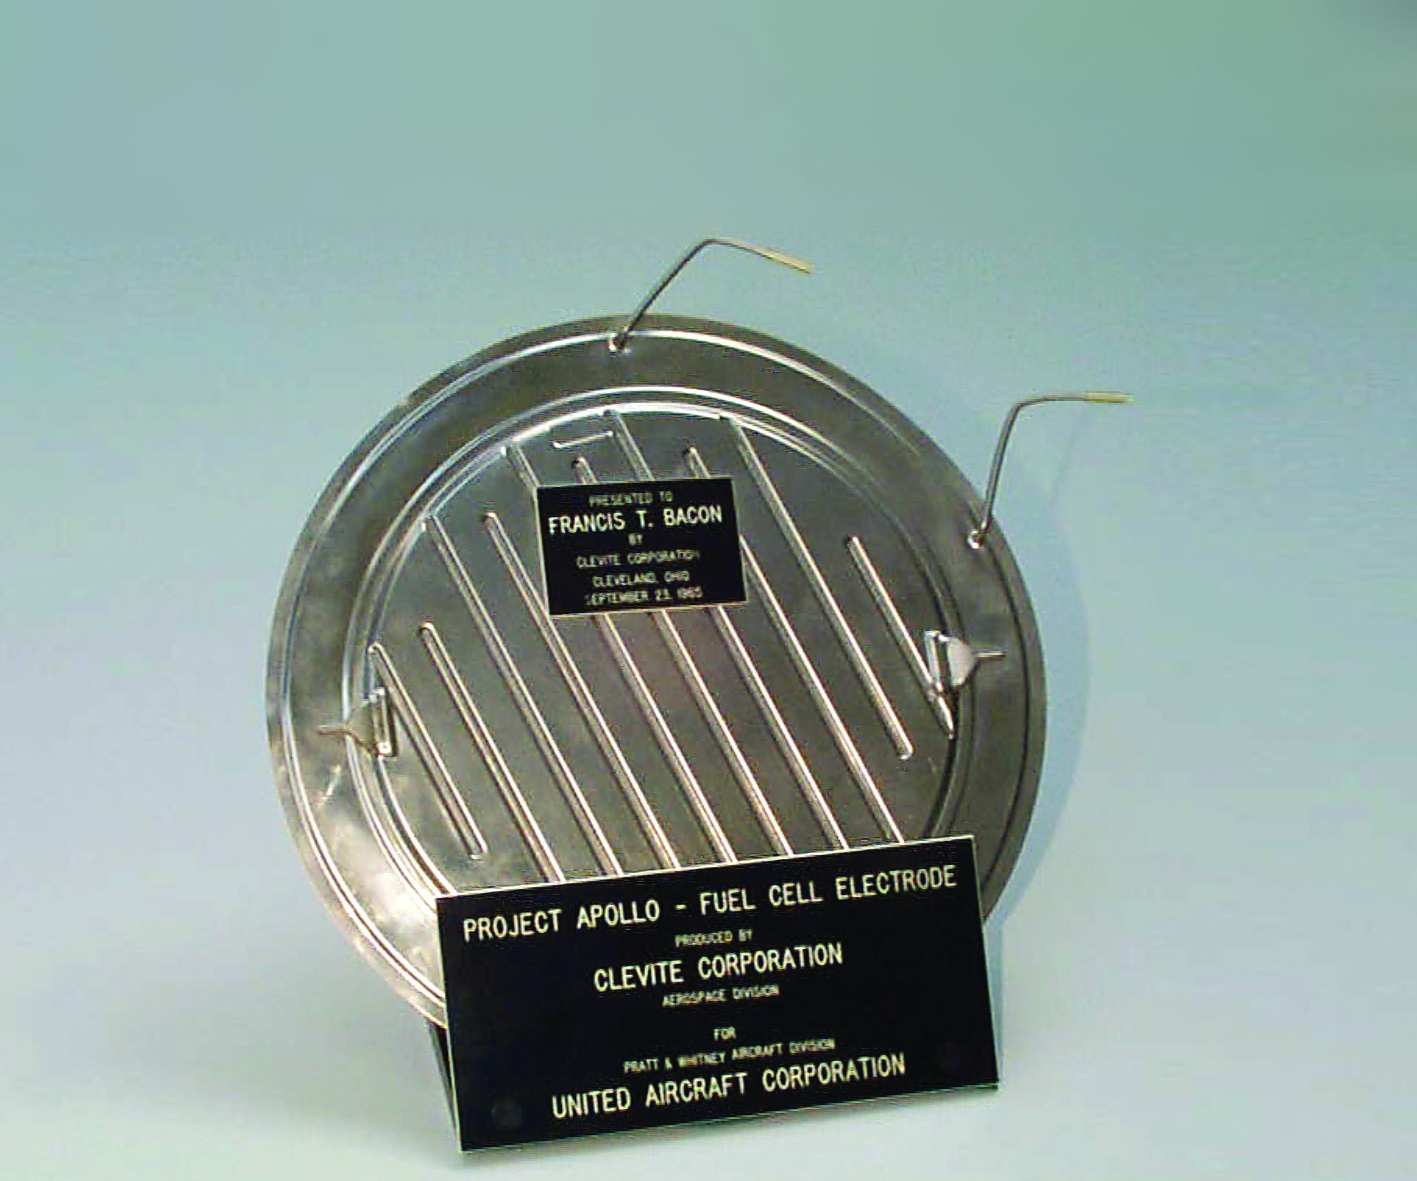 Bacon fuel cell electrode